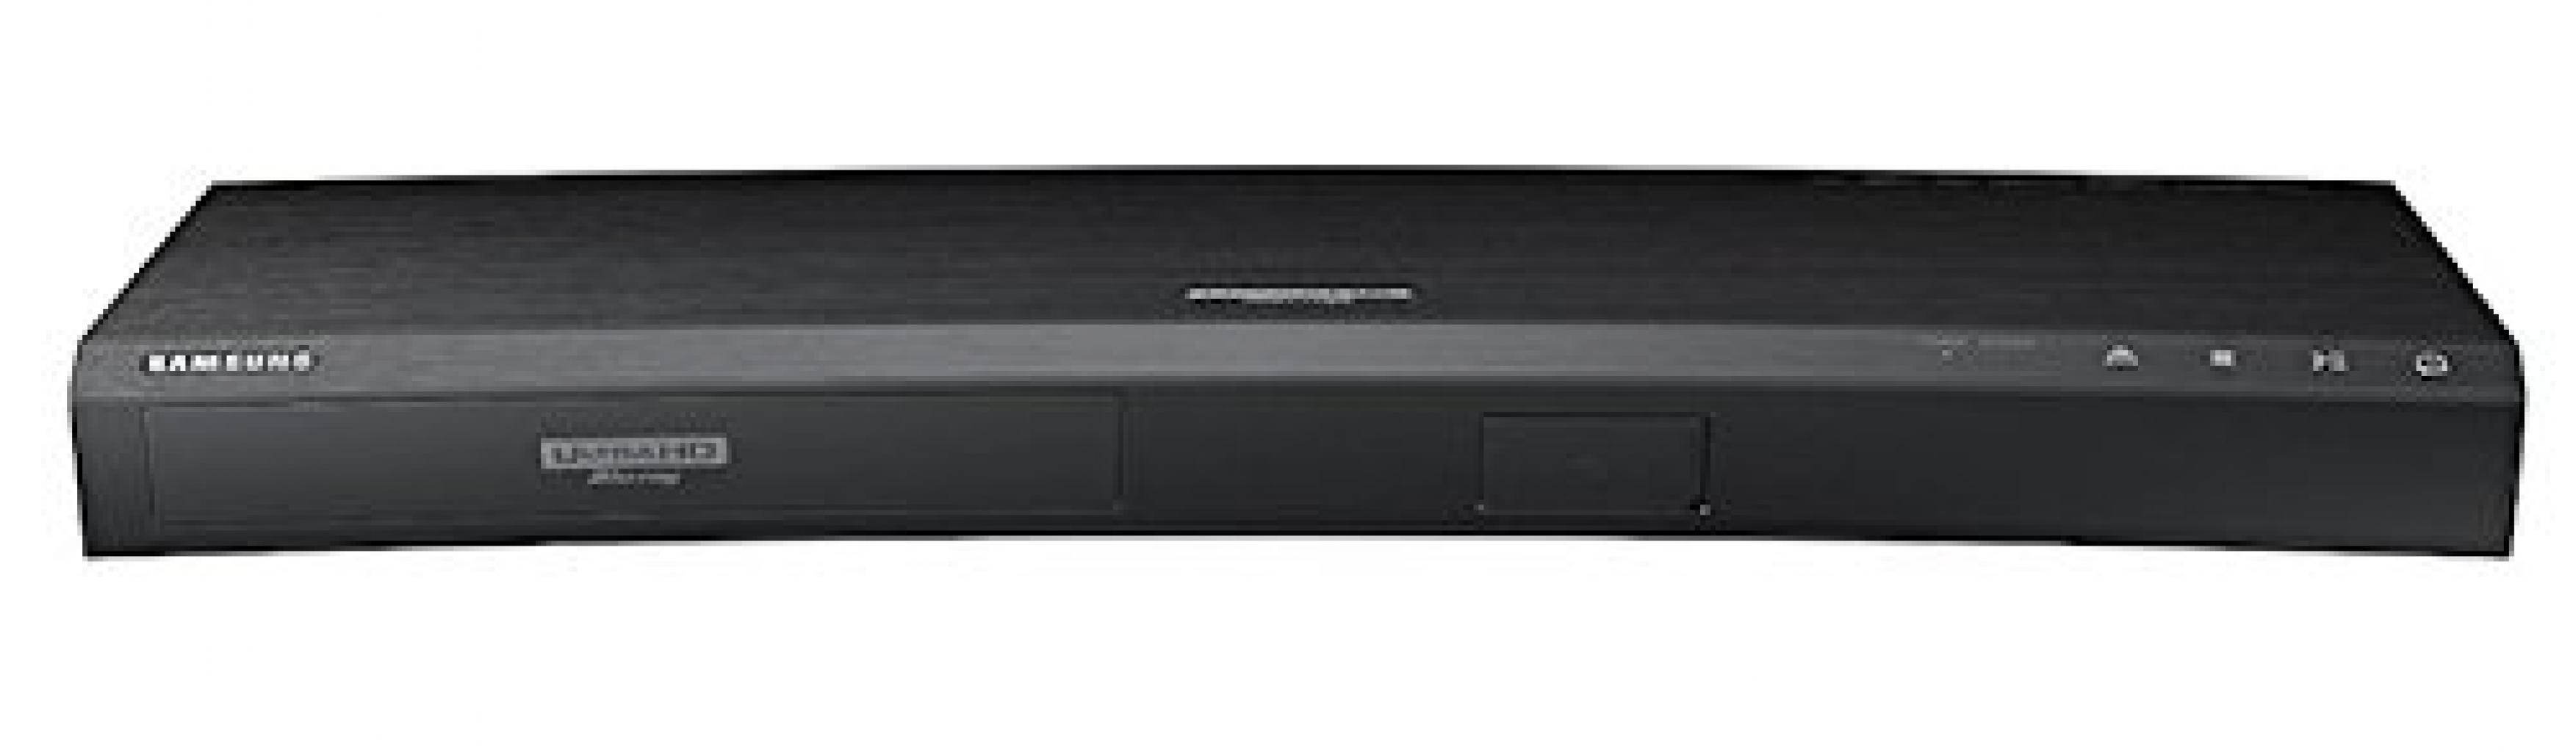 samsung ubd k8500 uhd blu ray player. Black Bedroom Furniture Sets. Home Design Ideas